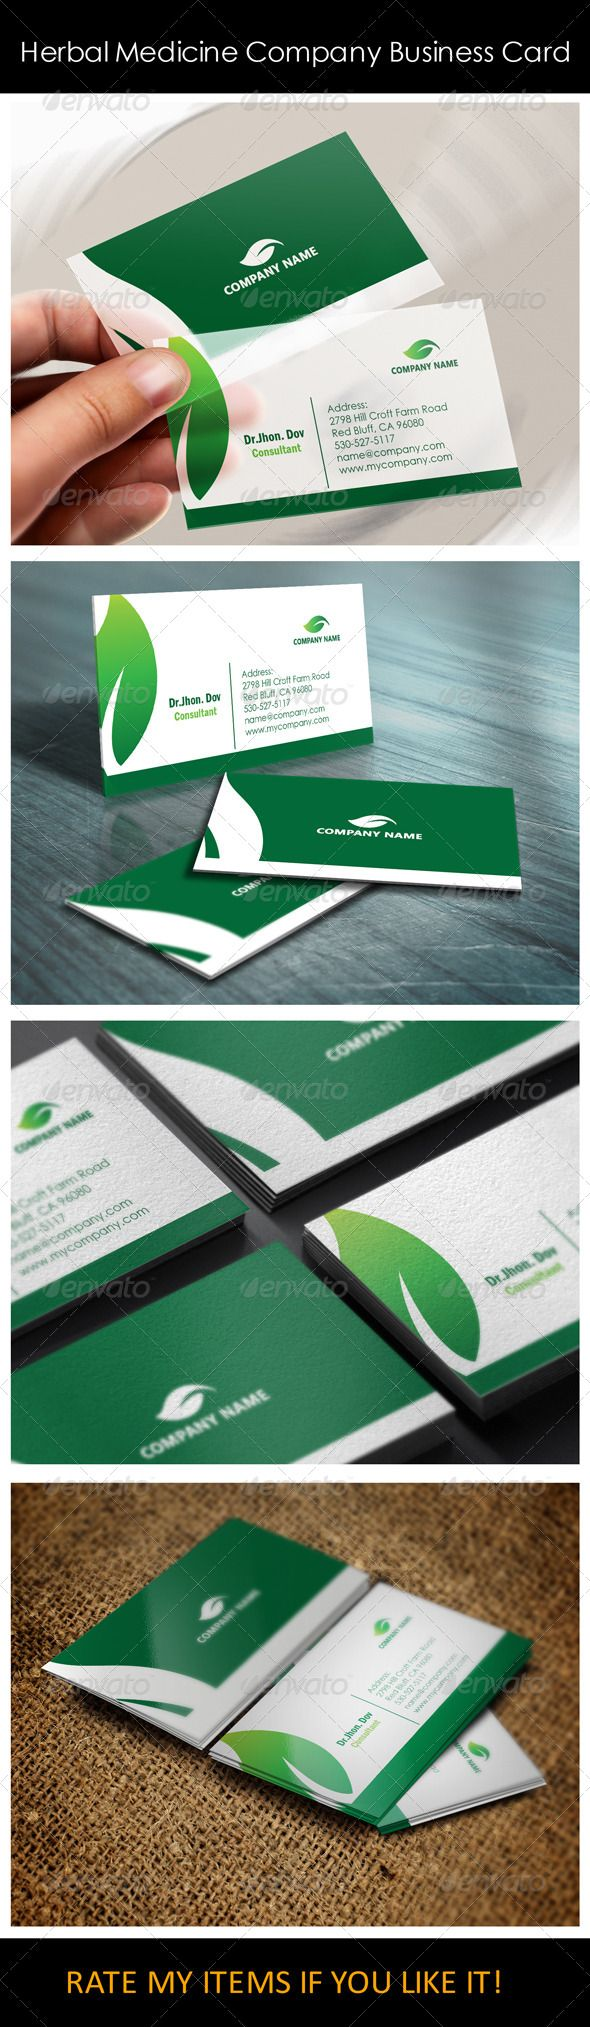 Herbal Medicine Company Business Card Templates Herbal Medicine